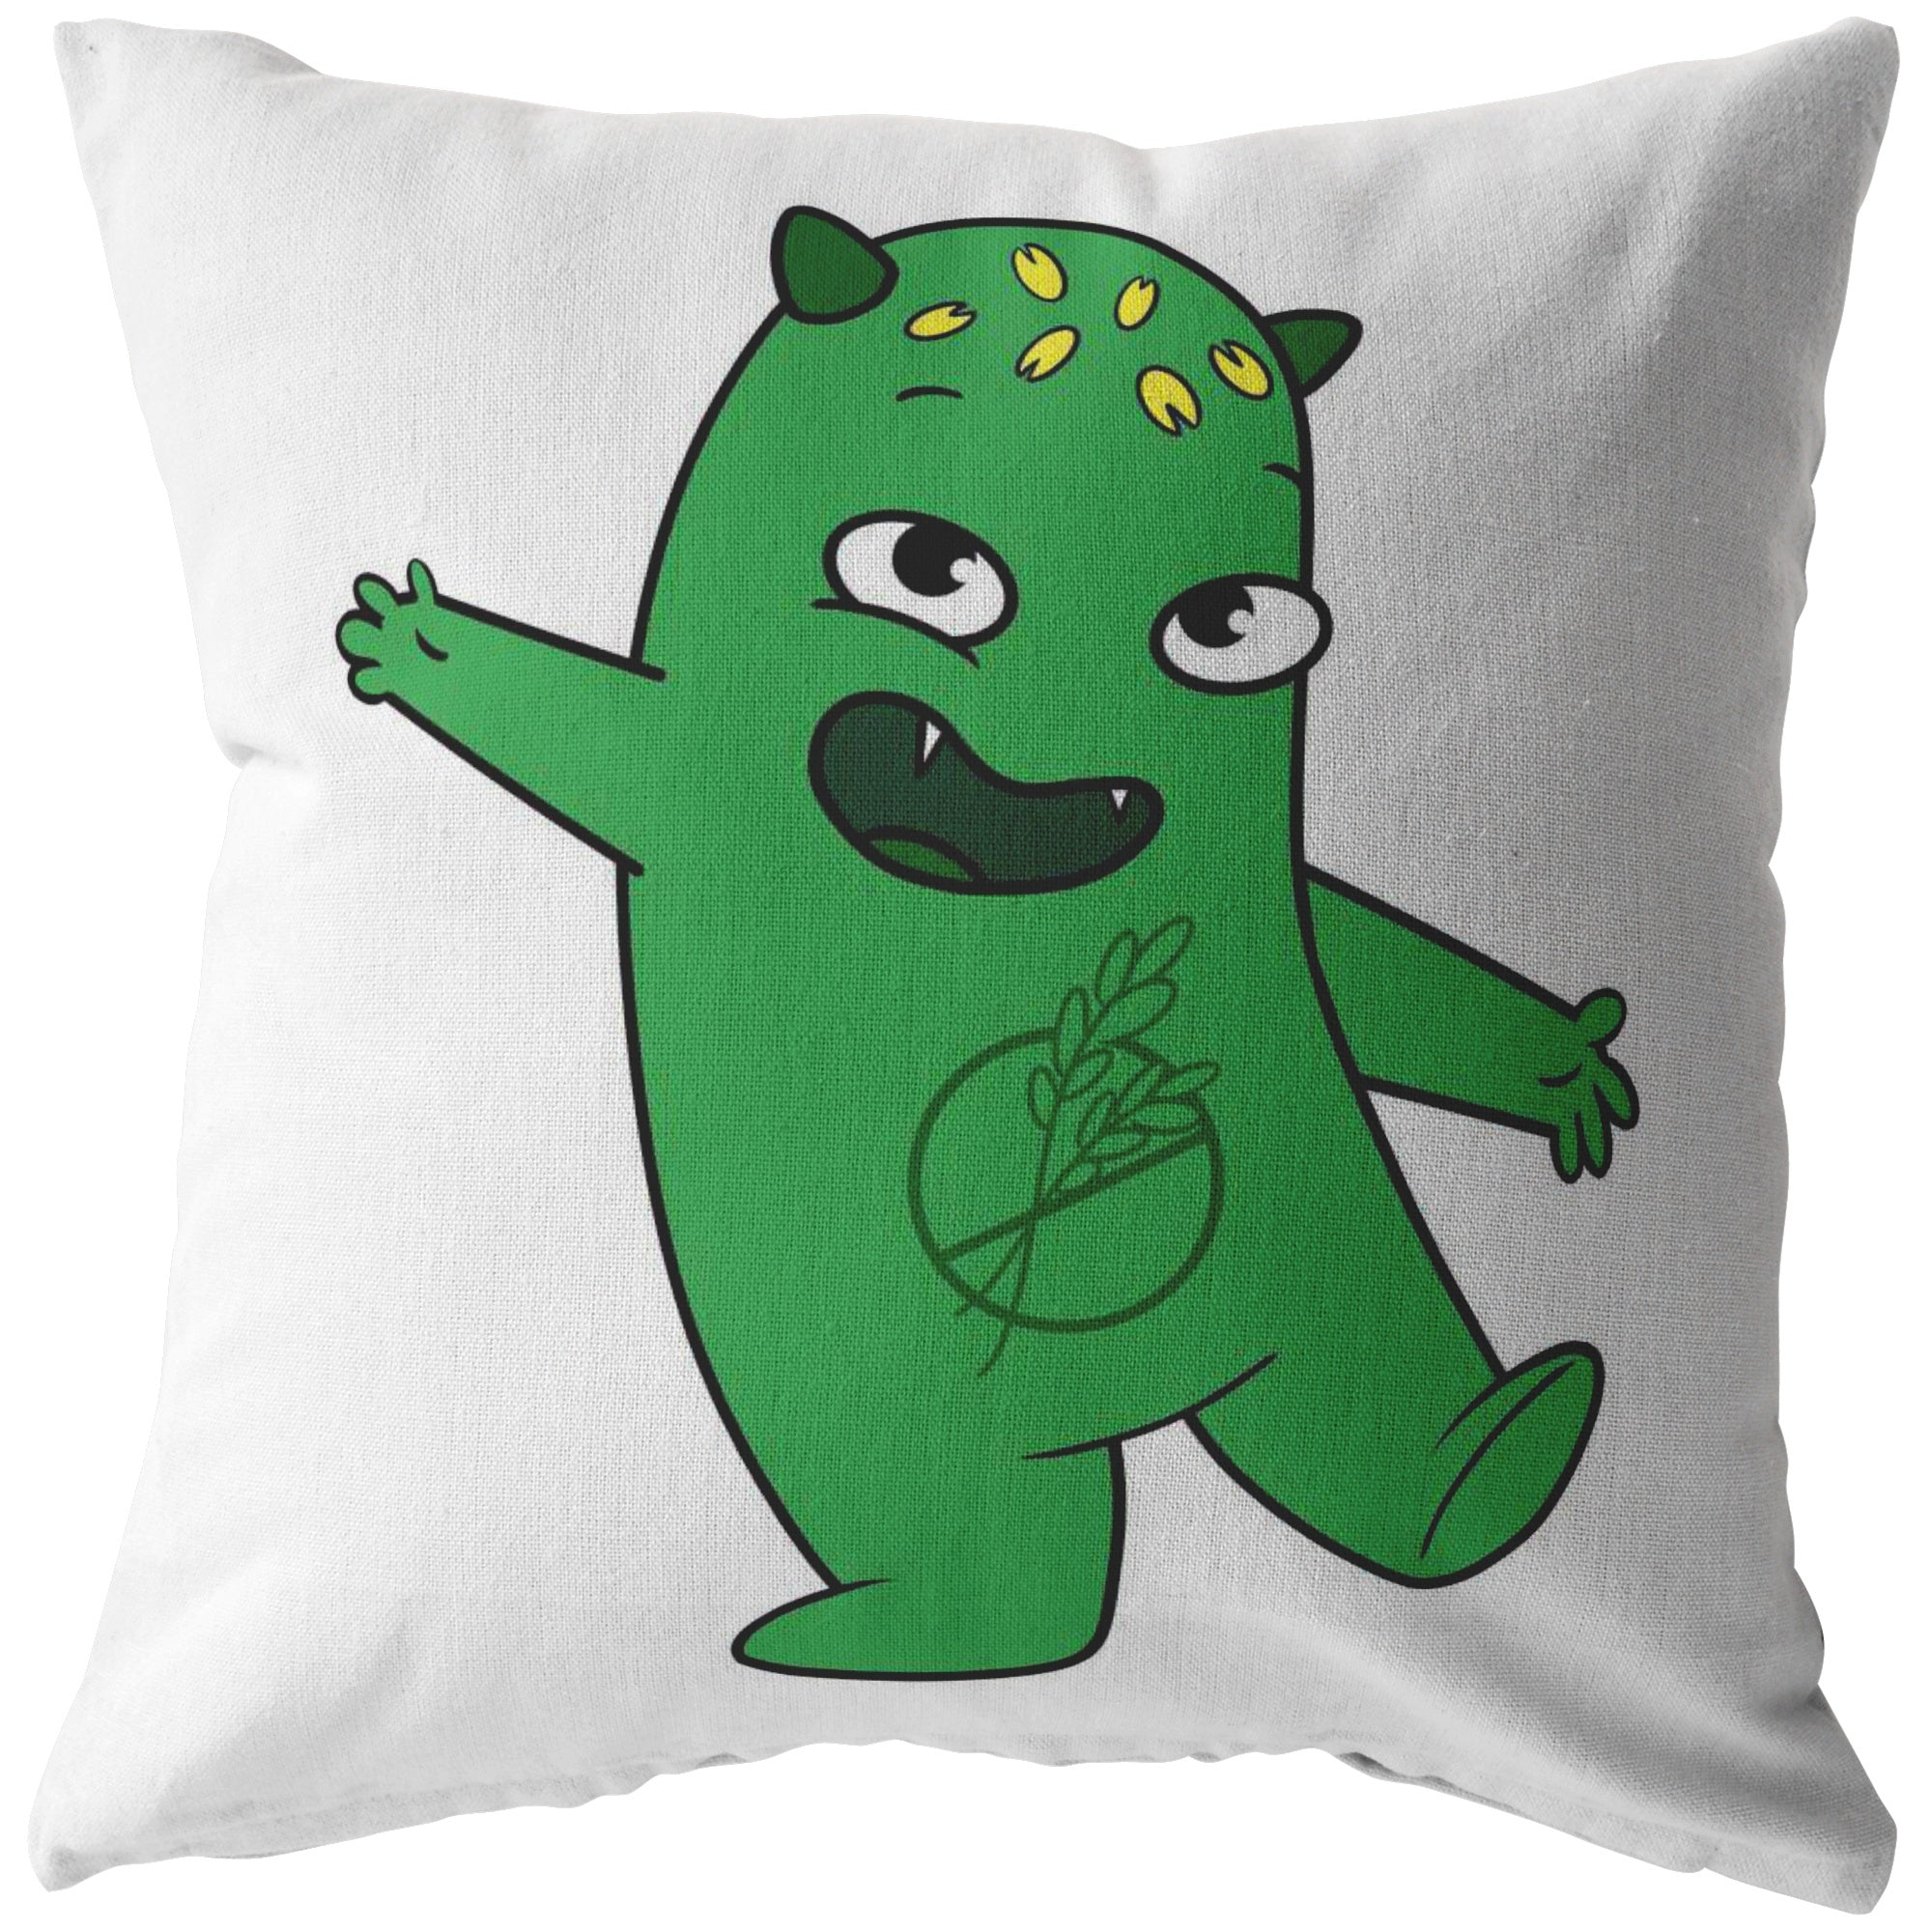 Lutes the Celiac Disease Monster Pillow